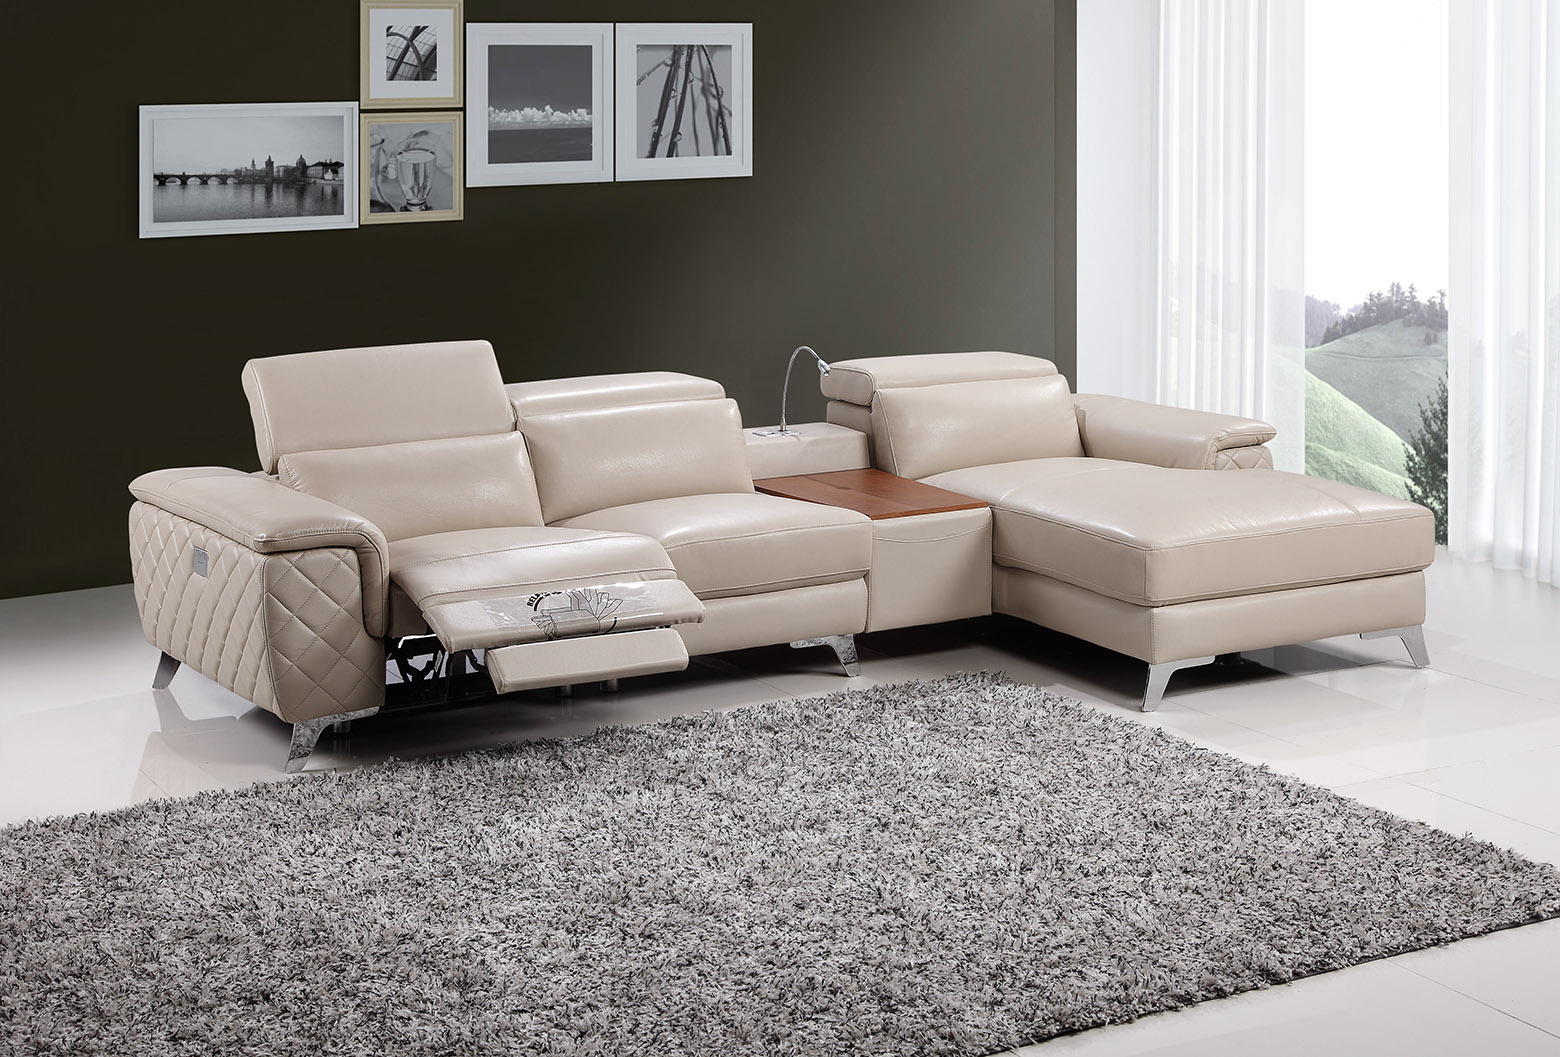 Fay 9159b chaise lounge with electronic recliner fortune for Chaise and recliner